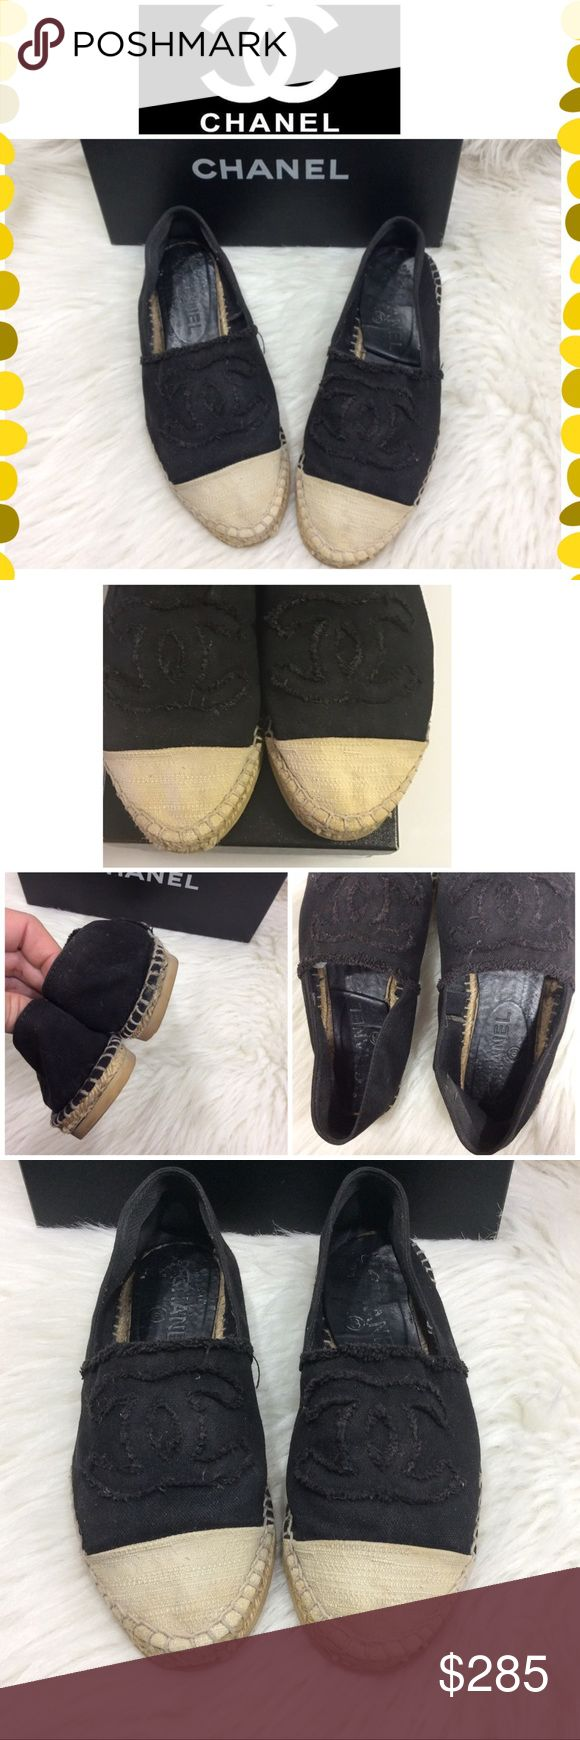 Authentic Chanel Espadrilles Authentic Chanel Espadrilles in black and off white. Preowned condition. They show wear throughout. The soles were re-done due to wear. The canvas shows discoloration and dirt. Could get either cleaned well or painted for better appearance. The shoes are super comfy and stylish.. with some care they would go a long way. Please view all pictures carefully. Original box included. Reposhed due to sizing. They're size 39 but run like a size 8 CHANEL Shoes Espadrilles